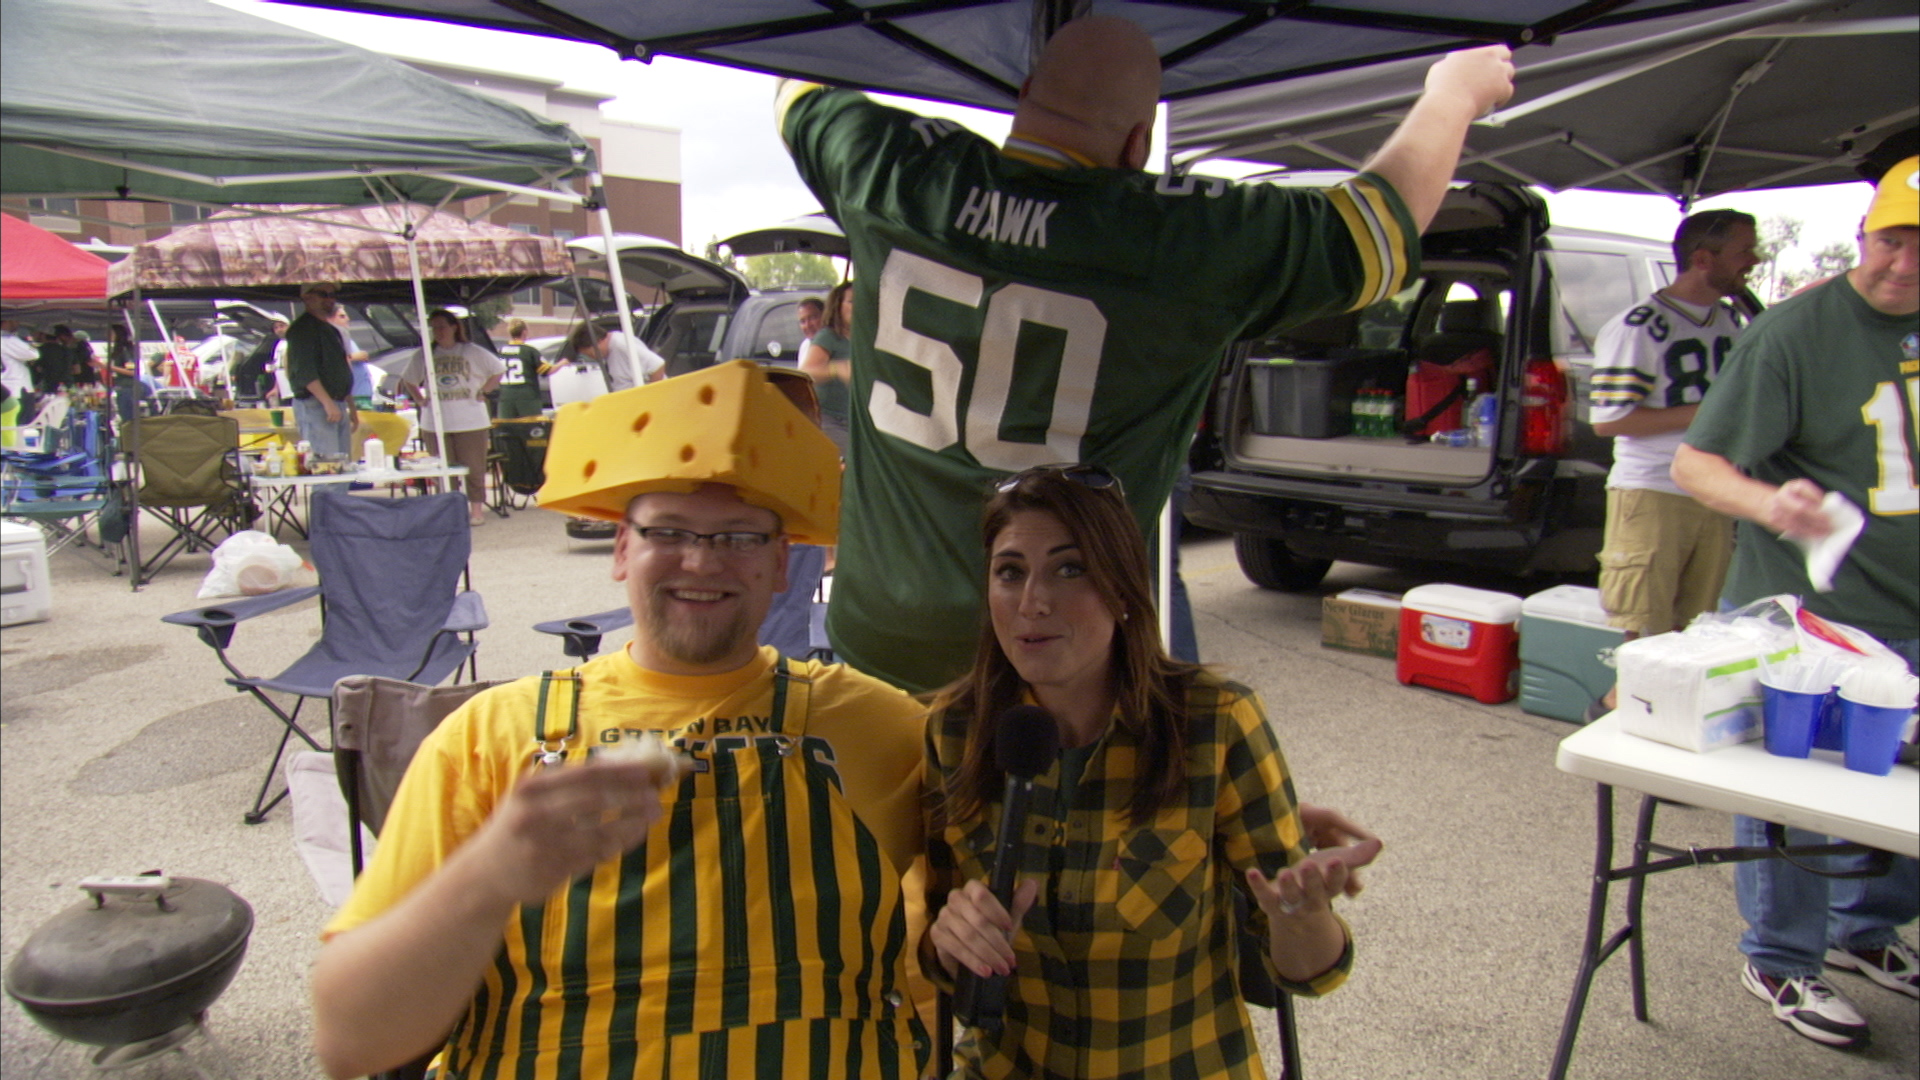 nfl fans4 Chicago Crew Goes Head to Head with NFL Fans for CBS Sports